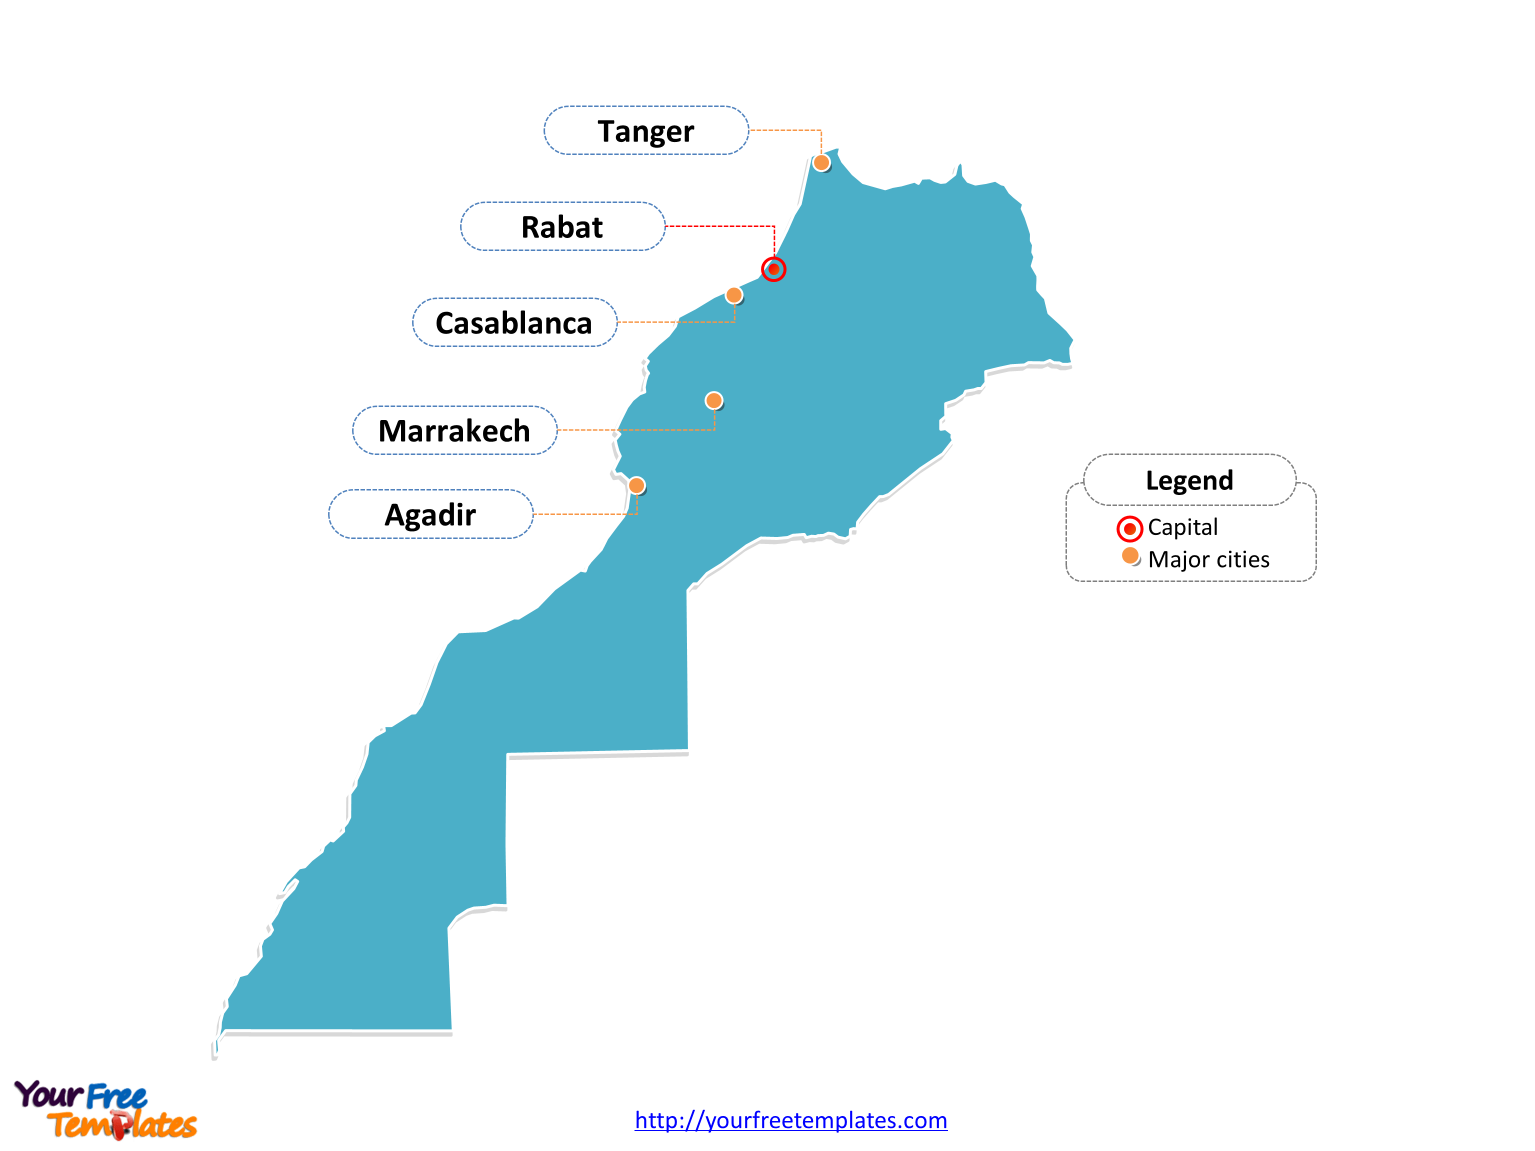 Morocco map labeled with cities